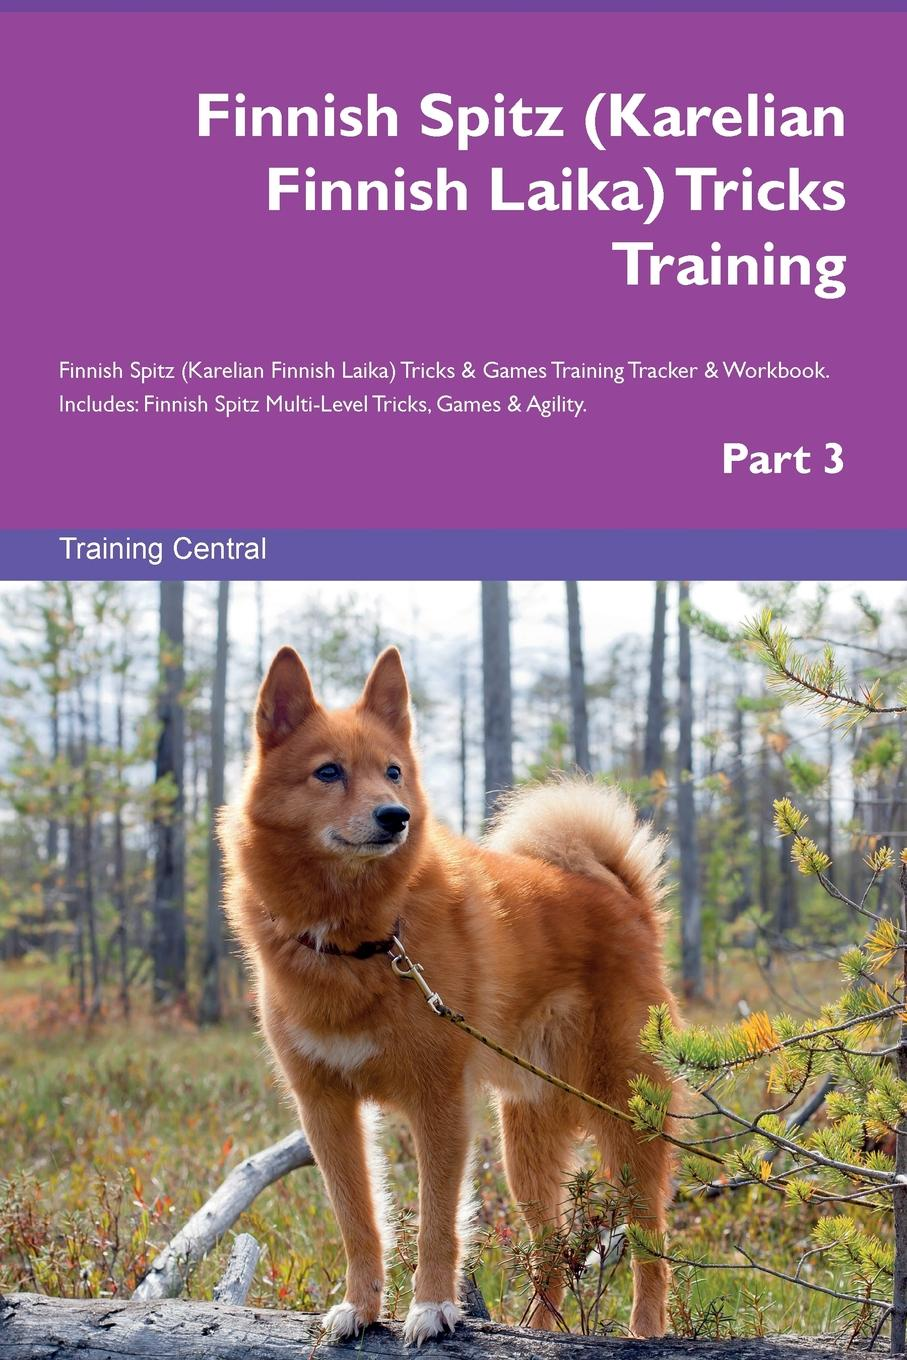 Training Central Finnish Spitz (Karelian Finnish Laika) Tricks Training Finnish Spitz (Karelian Finnish Laika) Tricks & Games Training Tracker & Workbook. Includes. Finnish Spitz Multi-Level Tricks, Games & Agility. Part 3 henkikirjoitusta seka muuttamista seurakunnasta toiseen ja papintodistuksia koskevat asetukset finnish edition